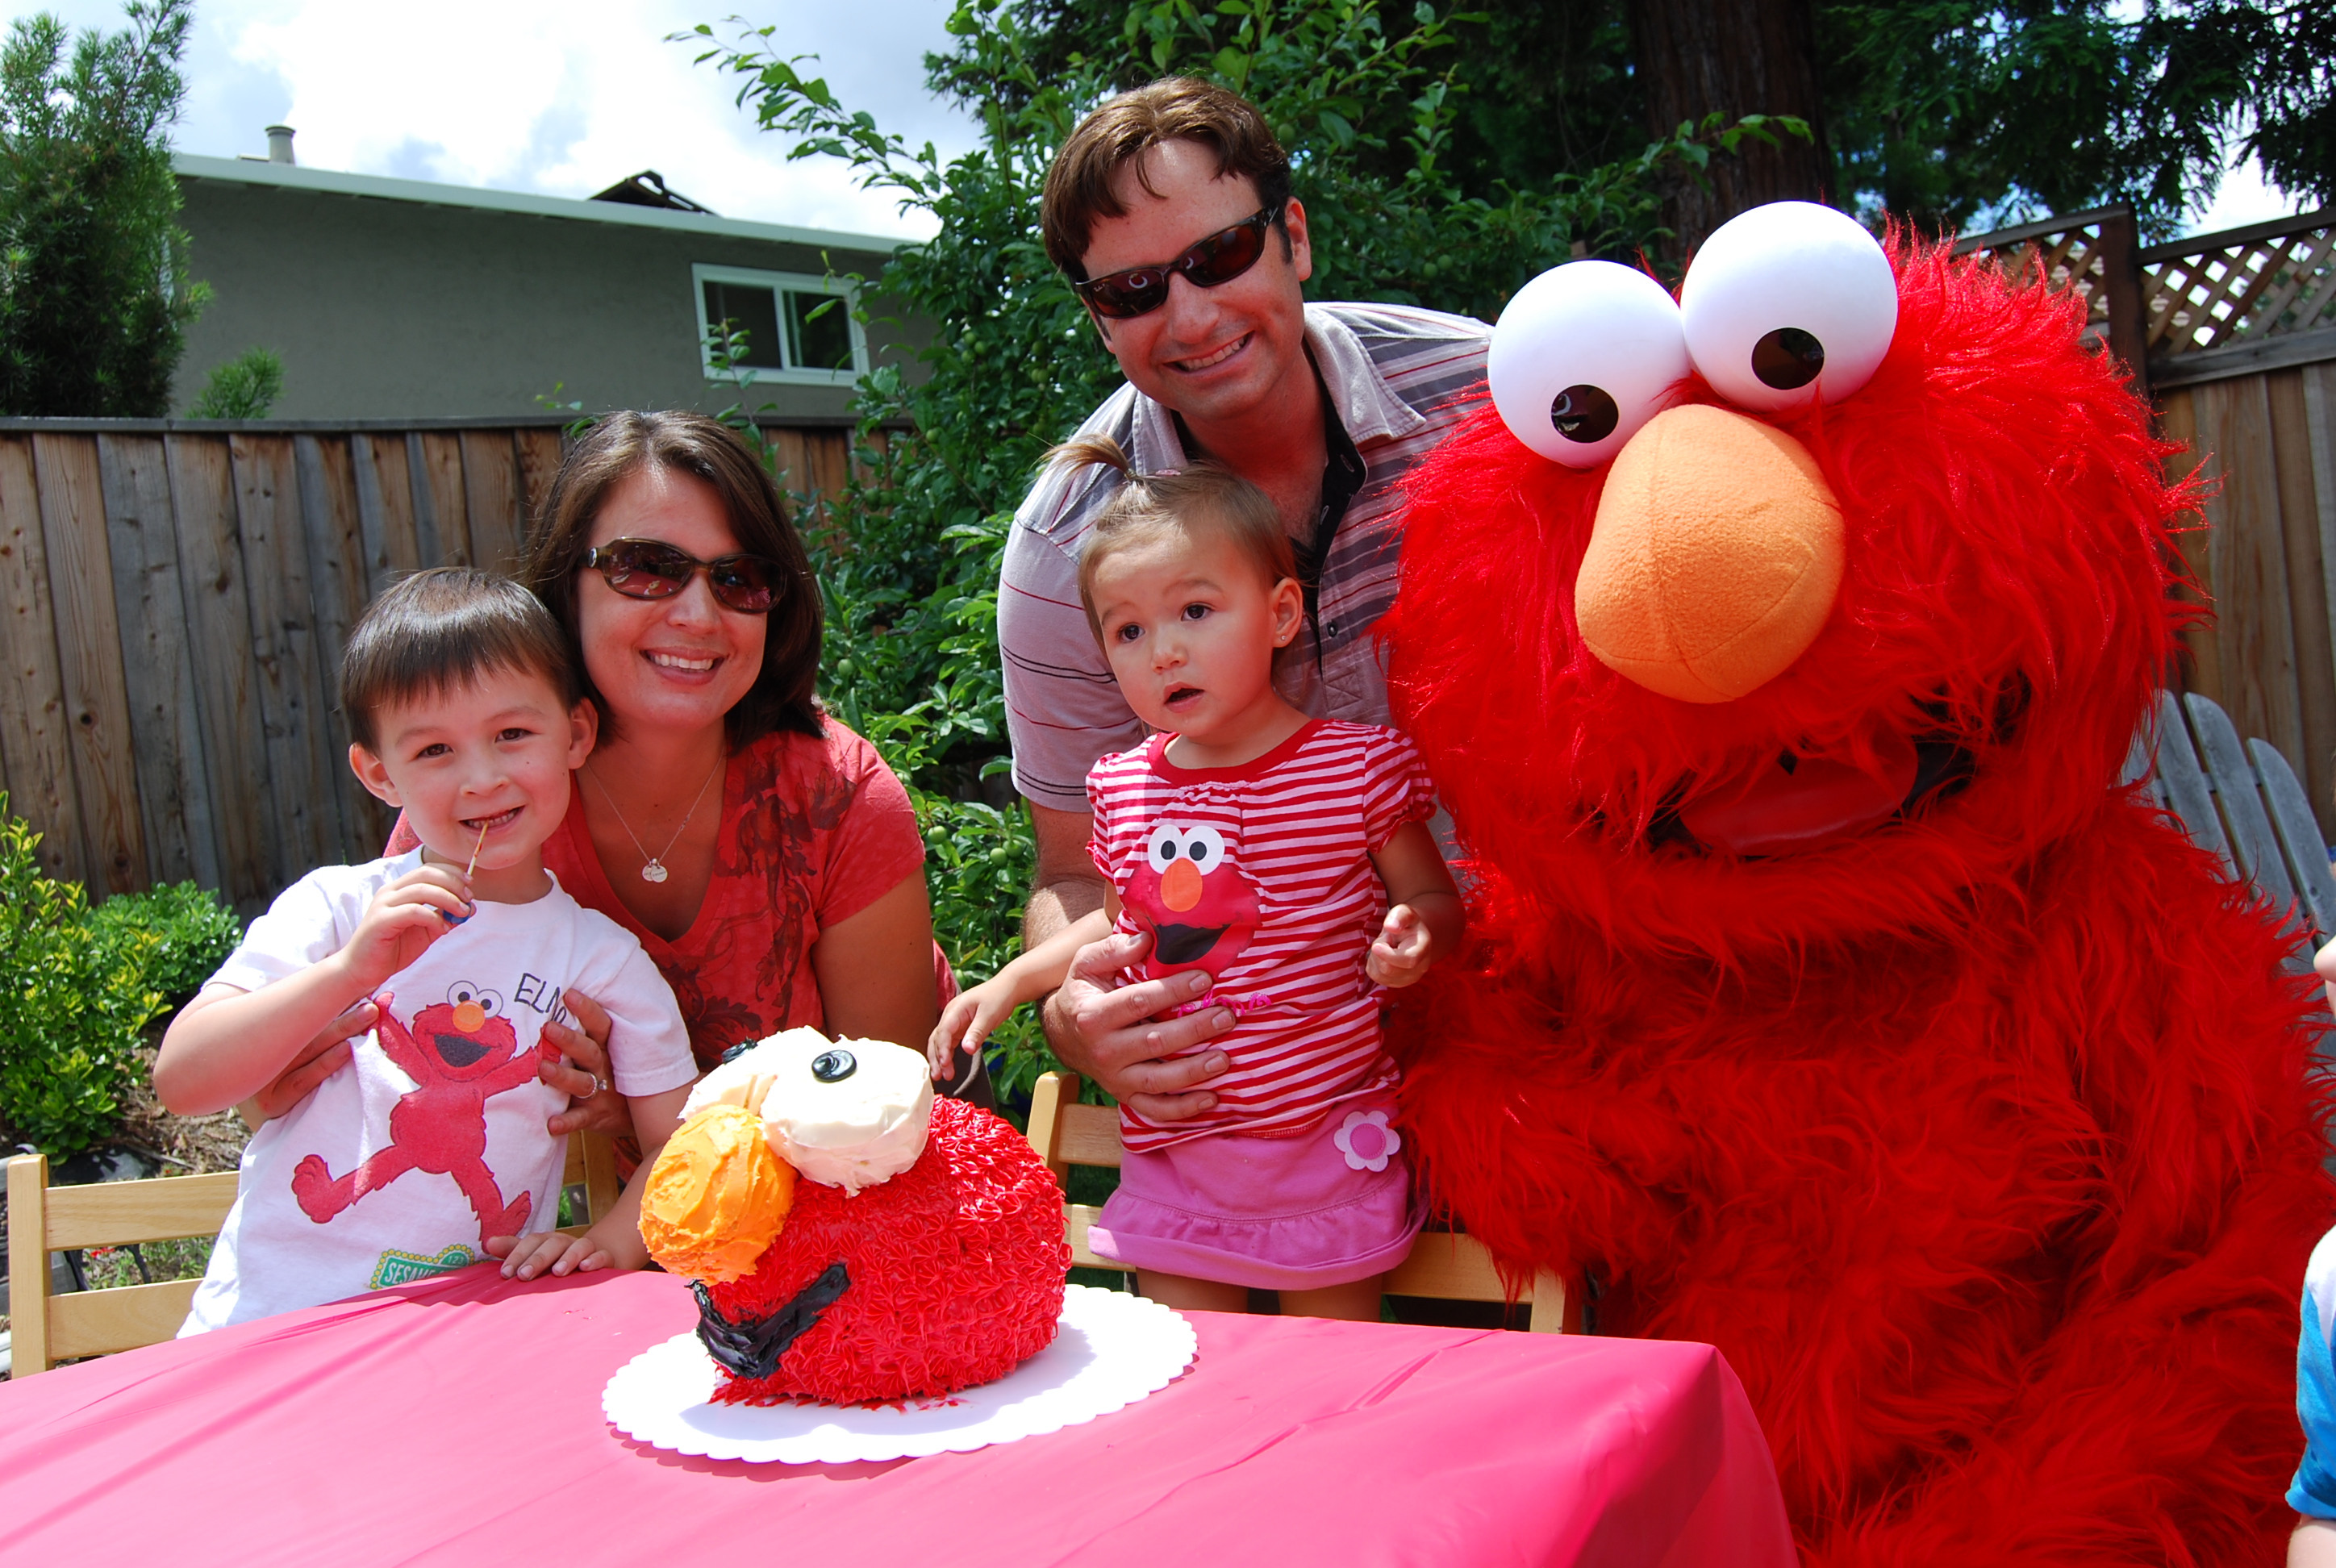 Best ideas about Elmo Birthday Party . Save or Pin Elmo Birthday Party Now.